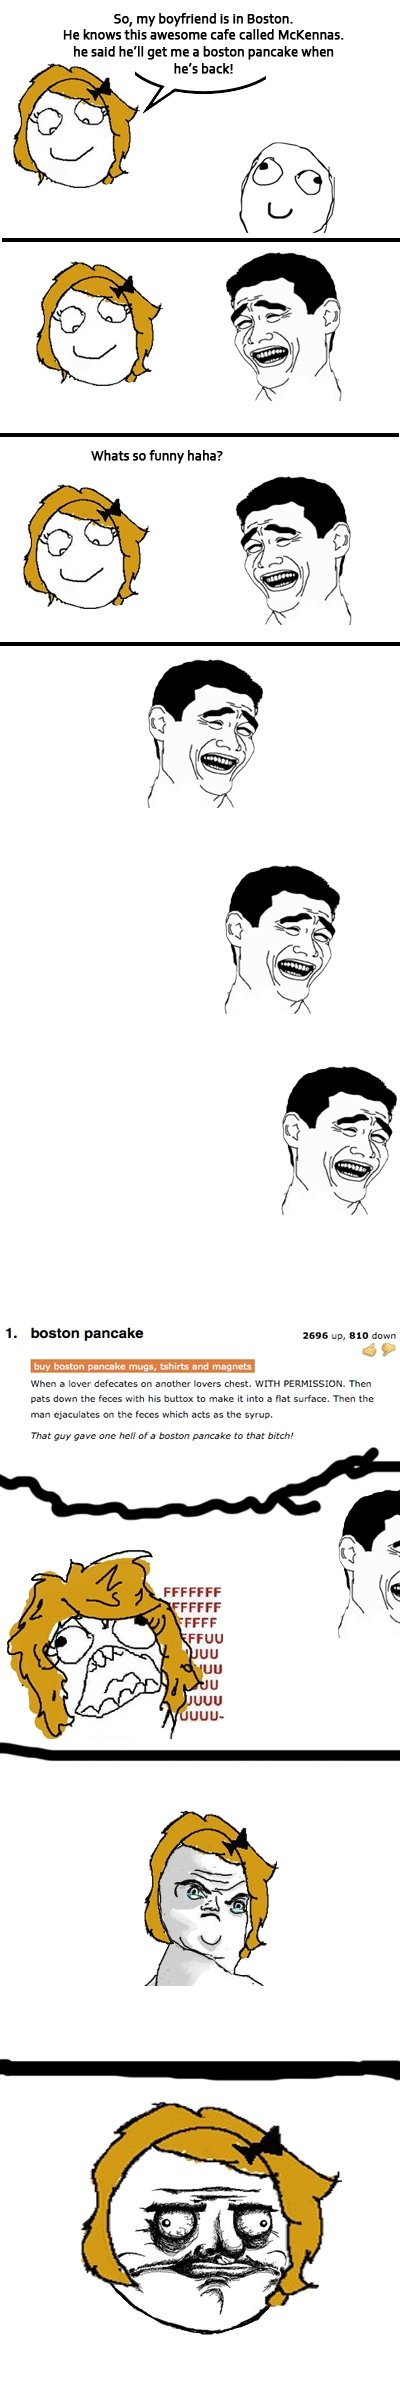 Troll BF. . So, my boyfriend is In Europen. He hm we awesomne cafe called Millenias. he said he' ll get me a hasten pancake when his back! Whats so funny ha ha?